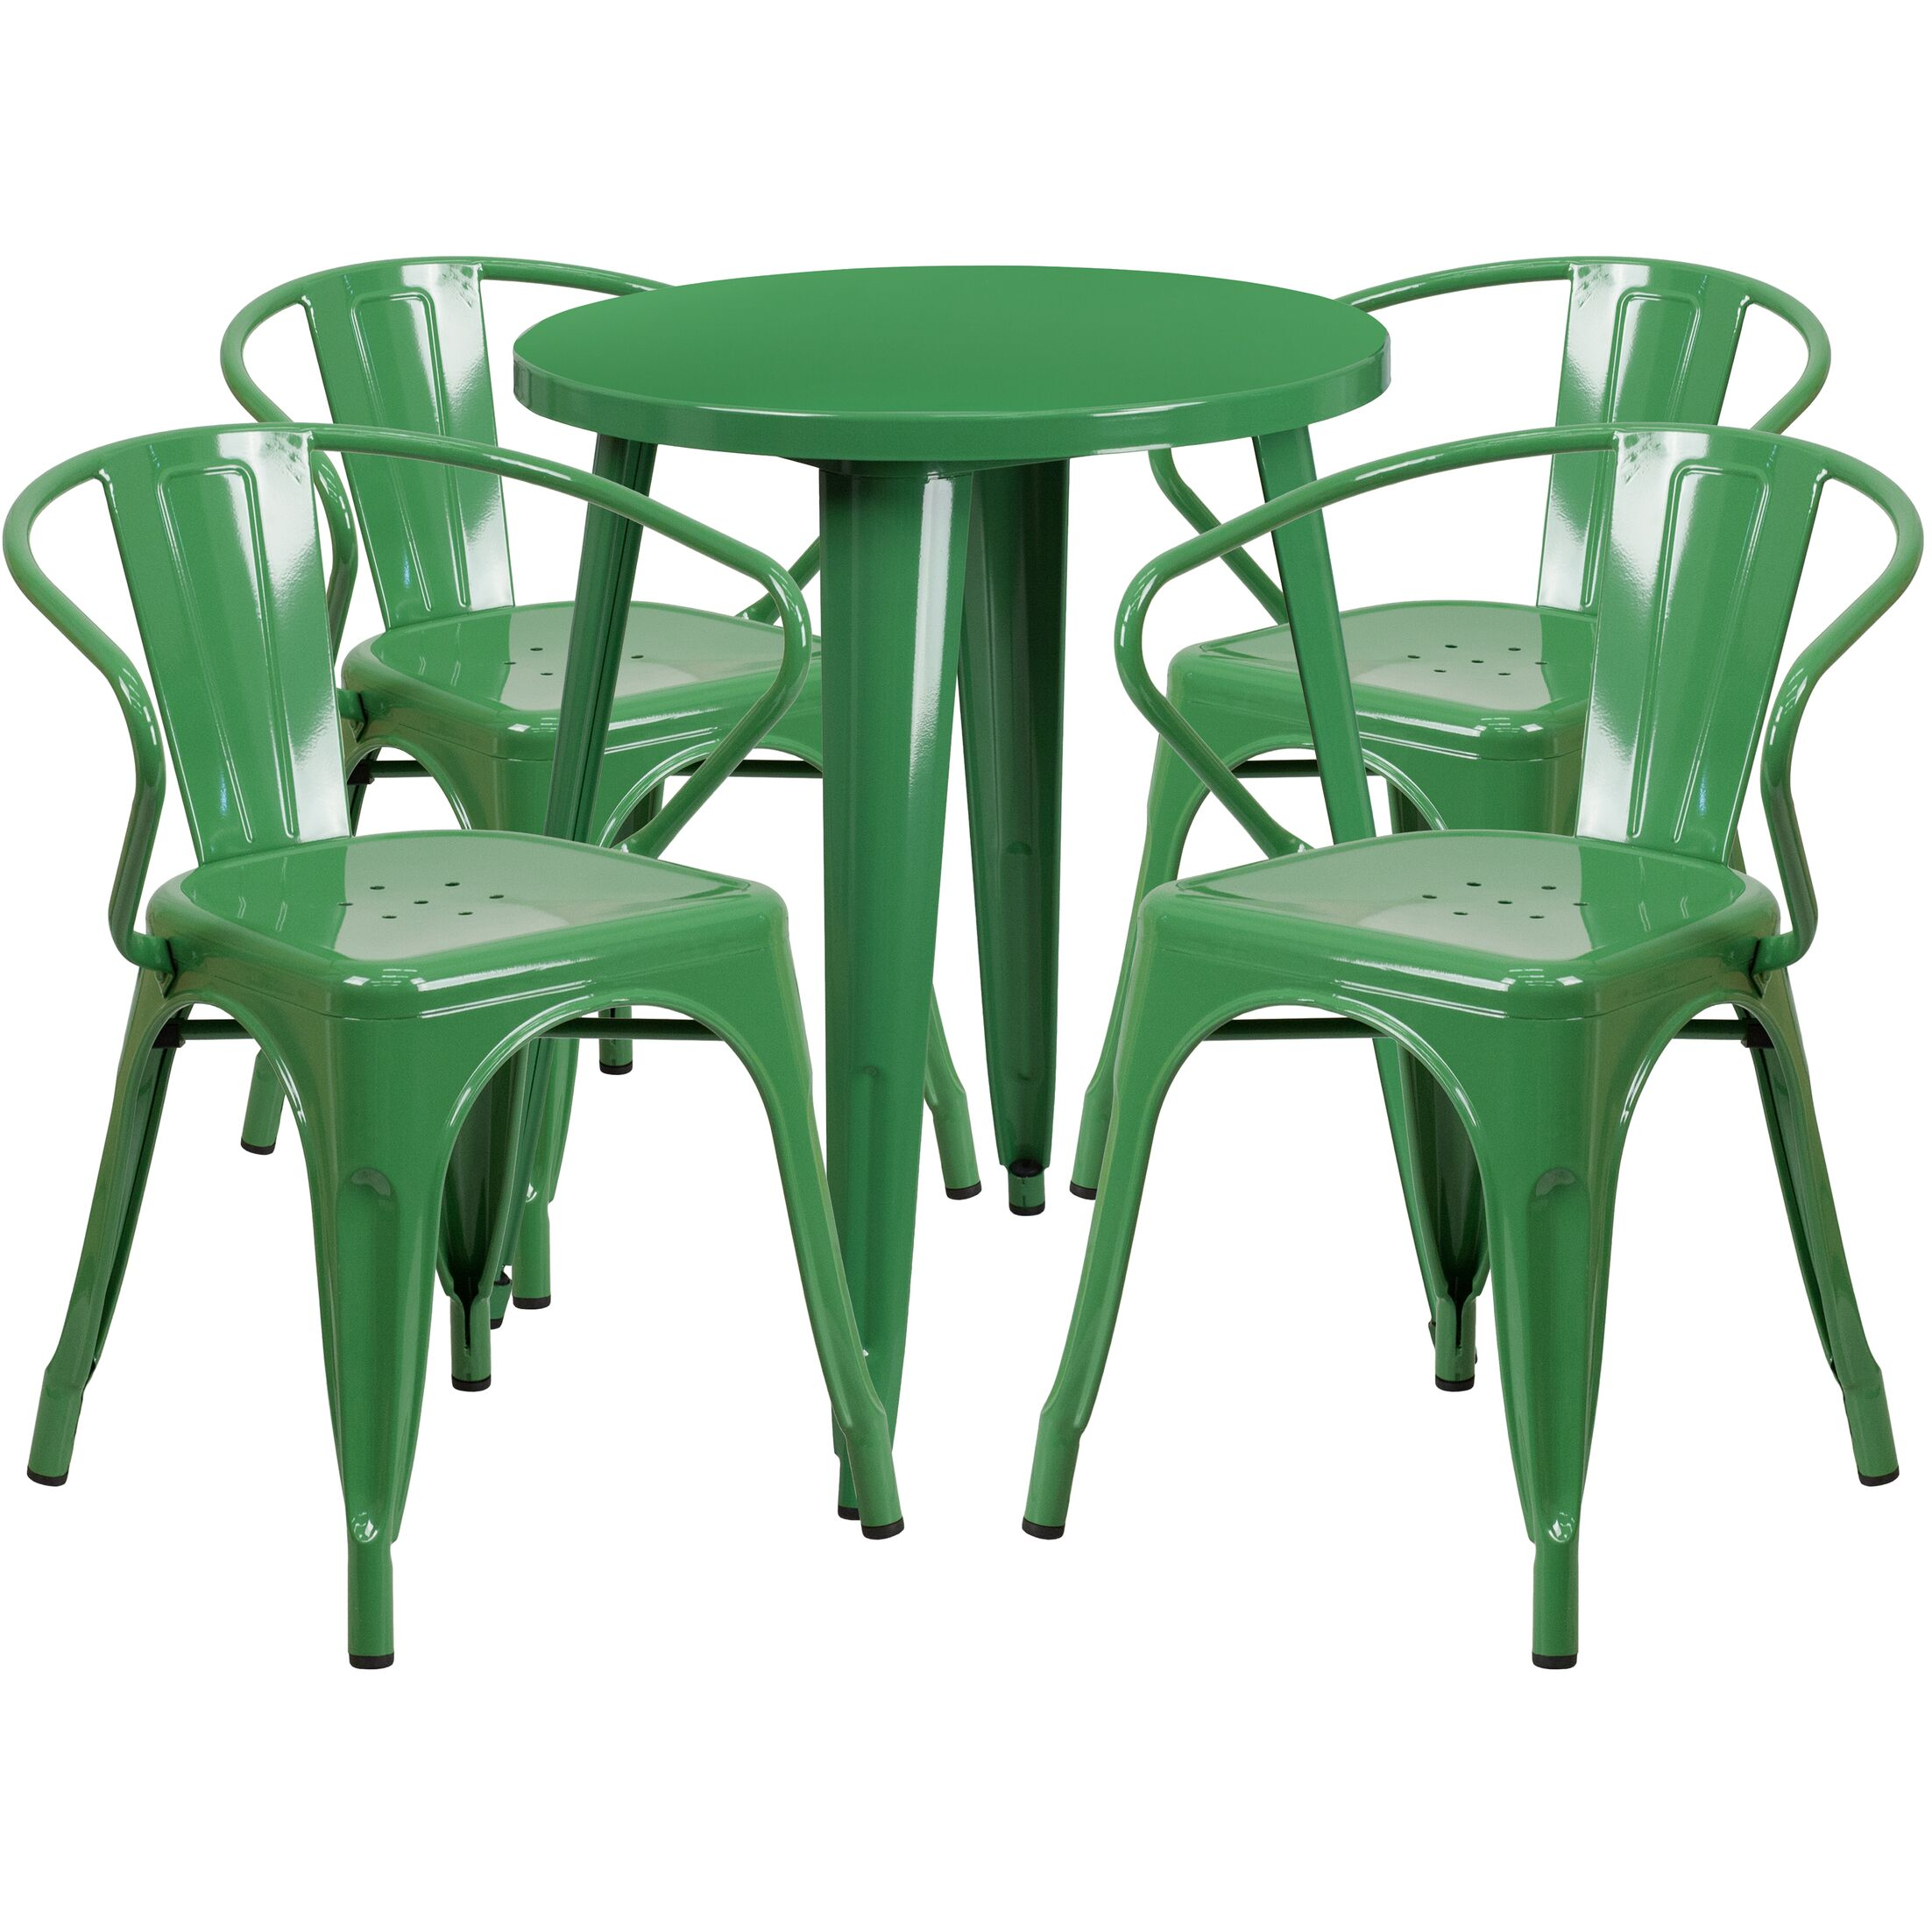 Cordele Metal Indoor/Outdoor 5 Piece Dining Set Finish: Green, Table Size: 29